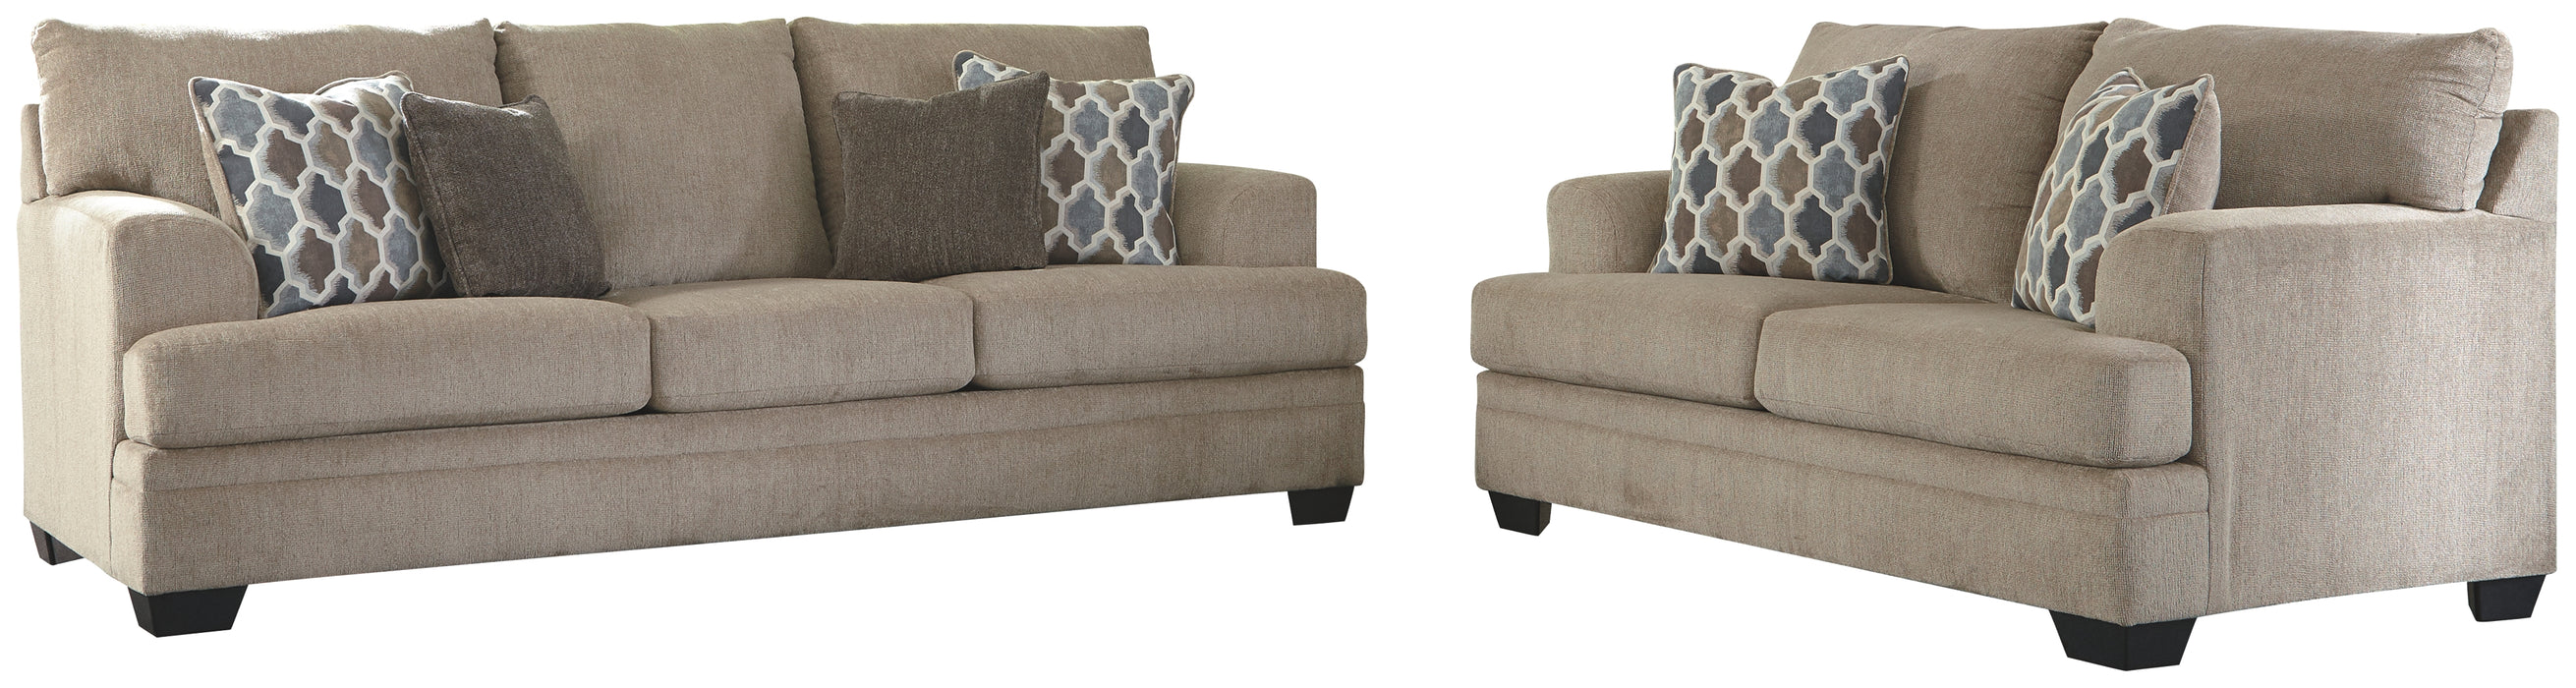 Dorsten Signature Design 2-Piece Living Room Set image